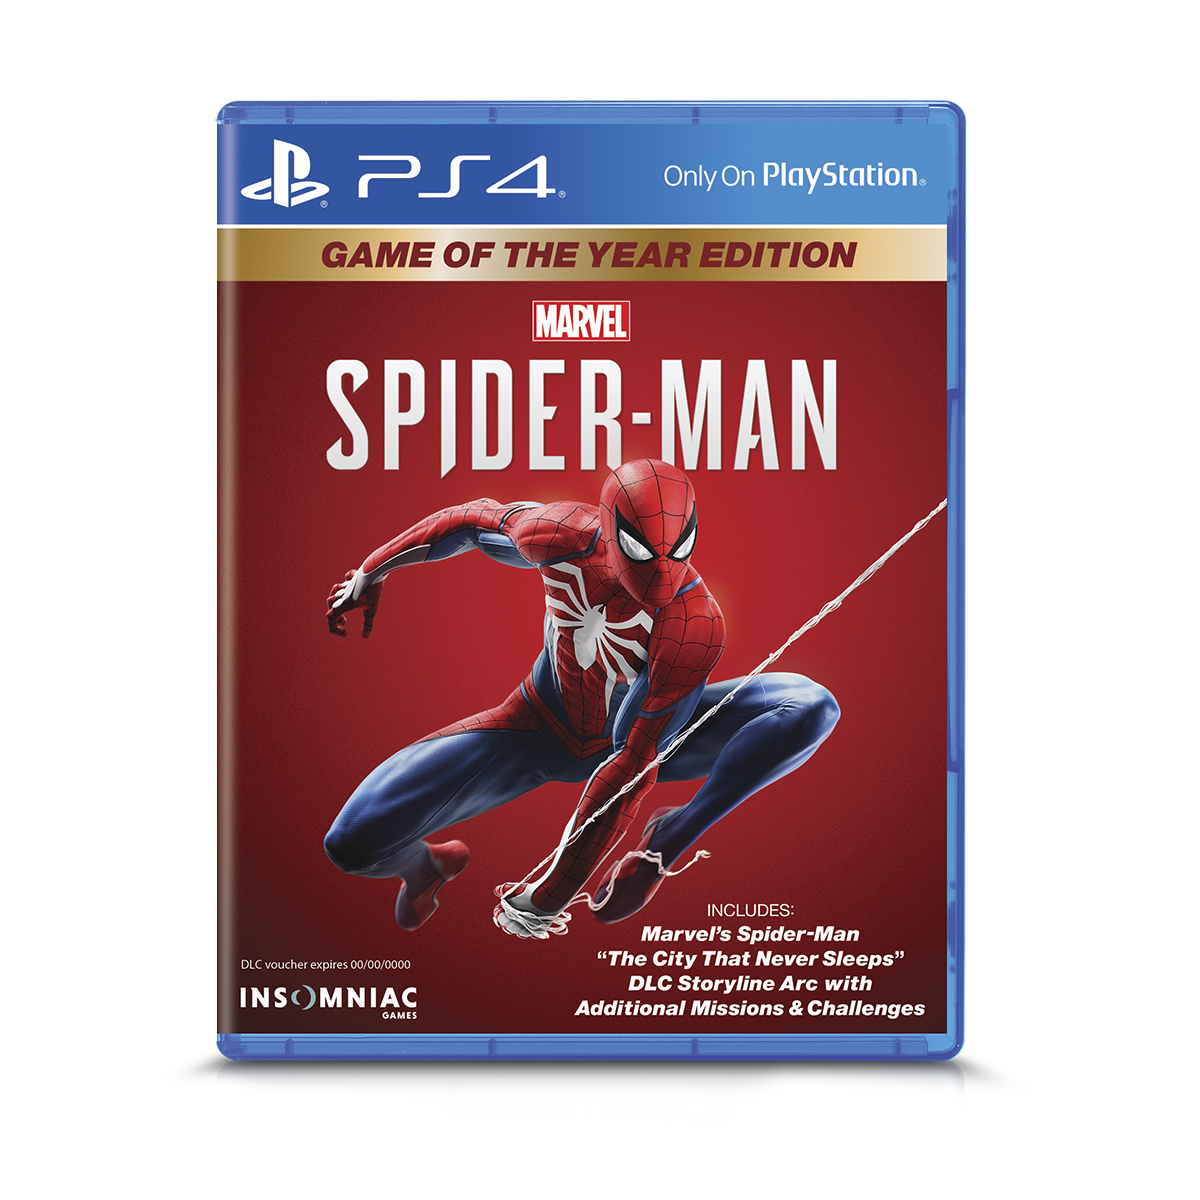 Marvel Spider-Man Game of the Year edition thumbnail